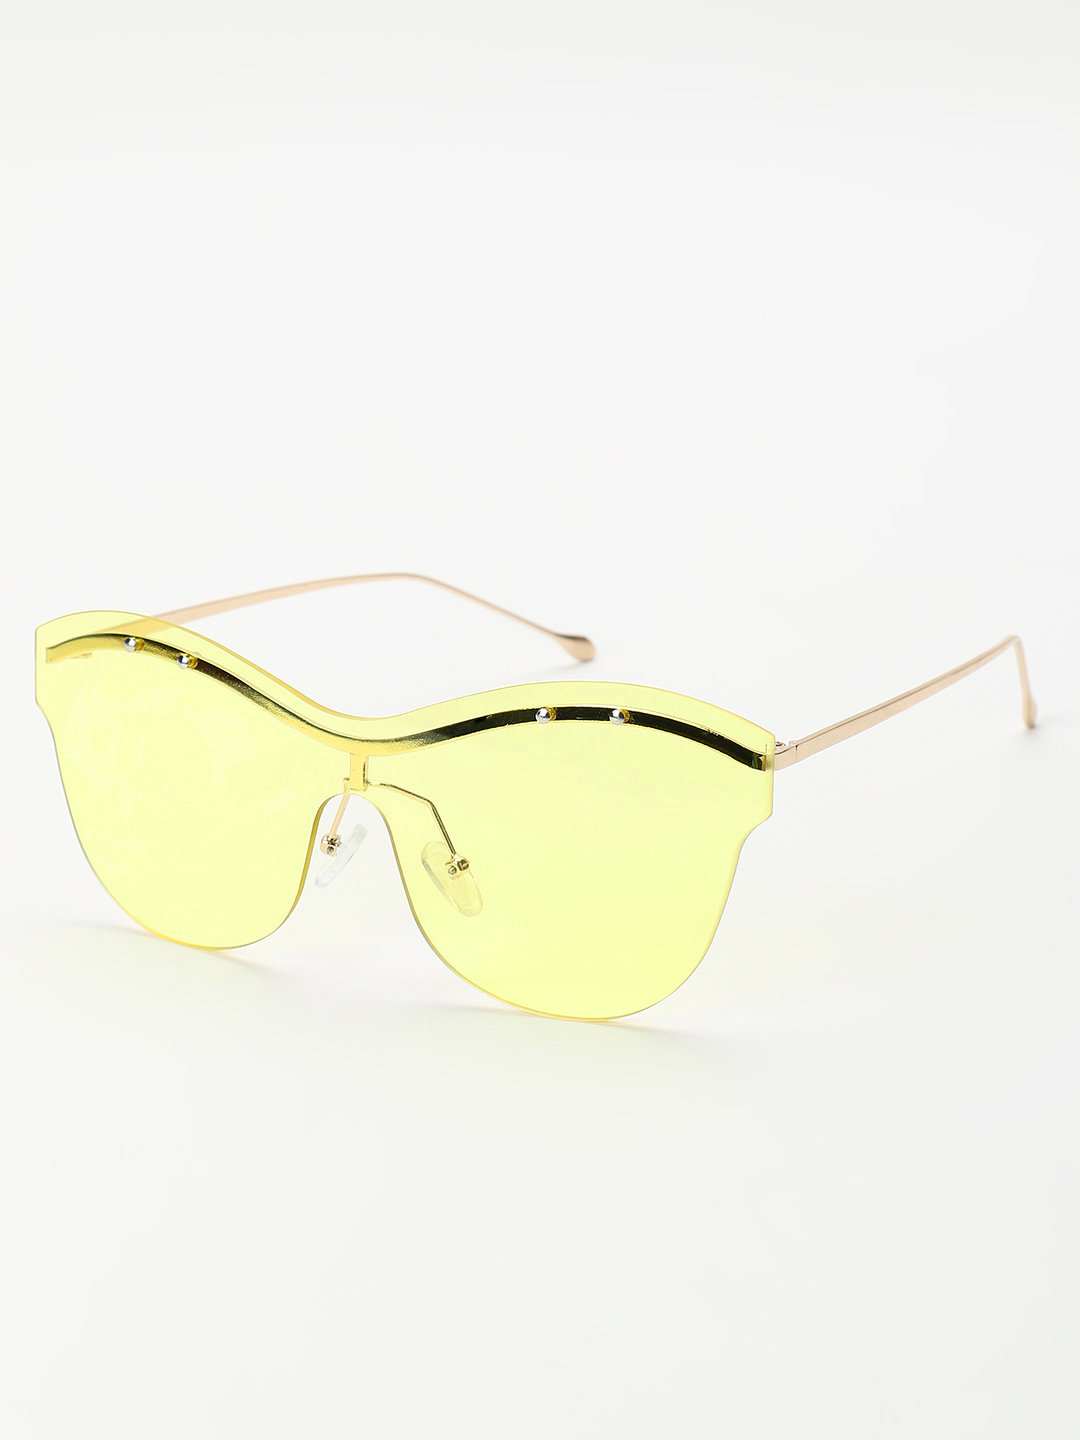 Sneak-a-Peek Yellow Eyebrow Detail Cateye Sunglasses 1